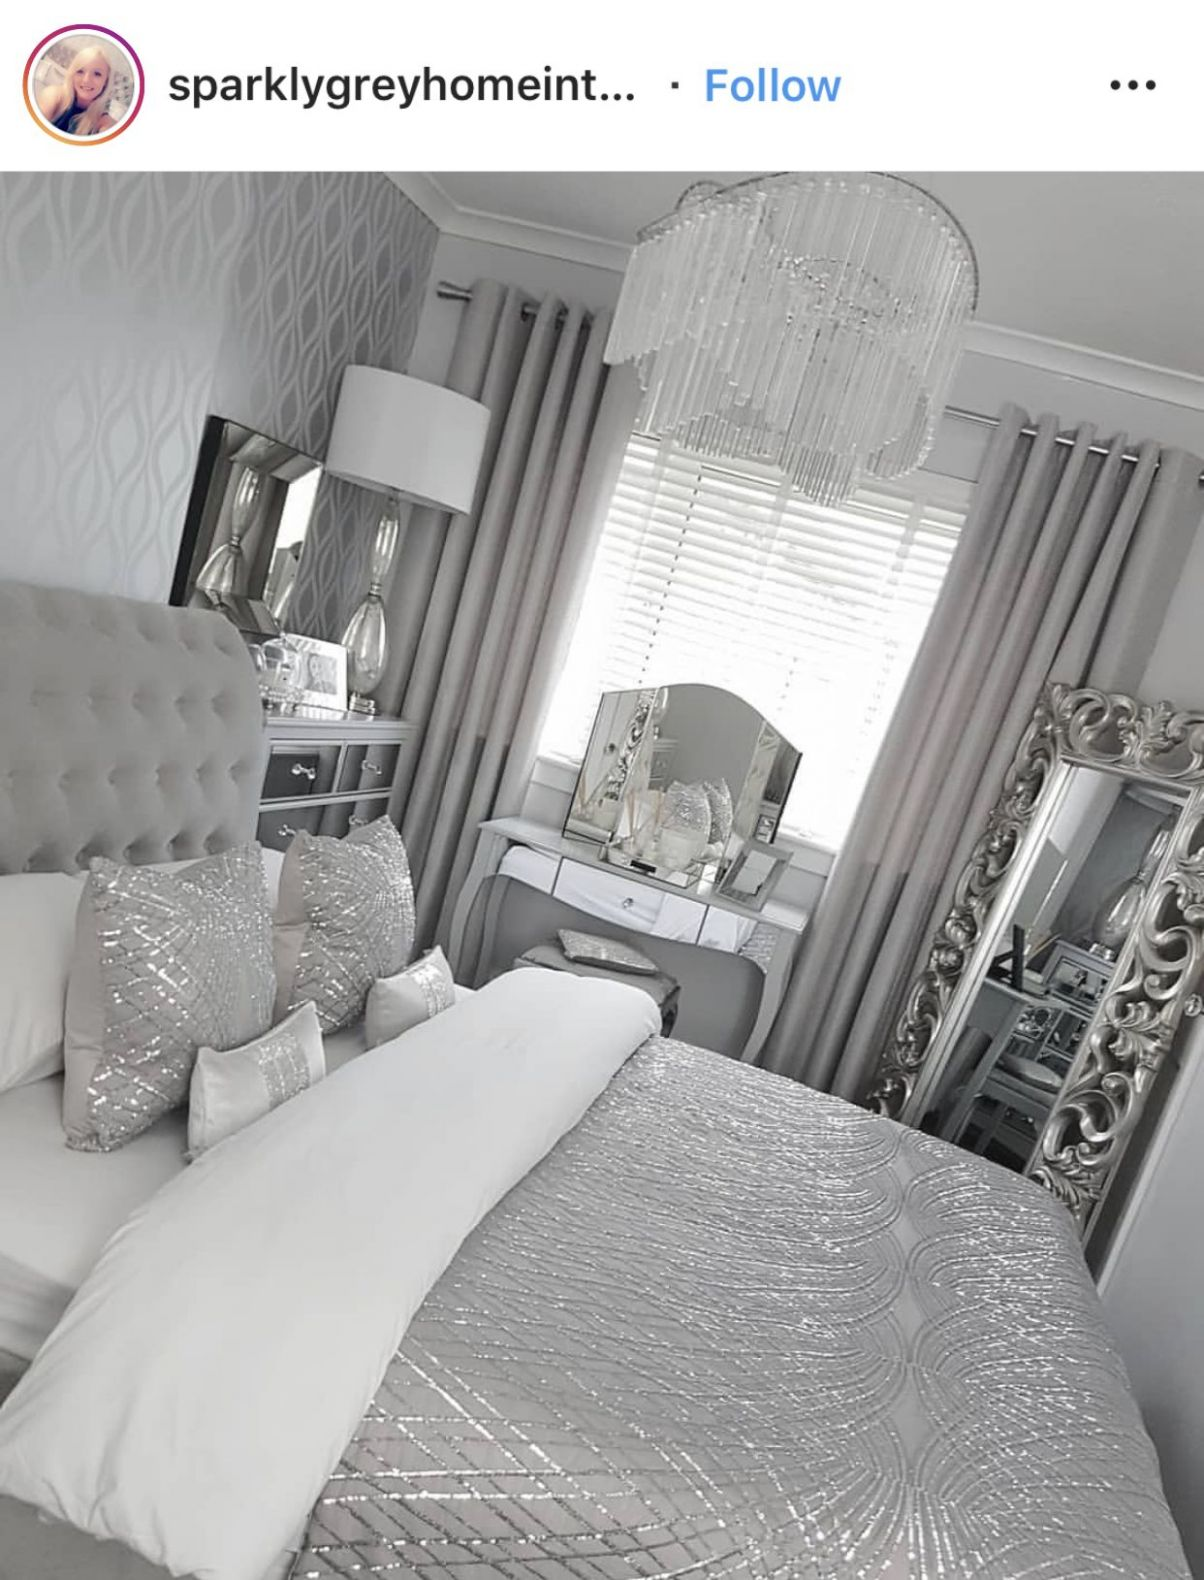 The bedspread is pretty but all that silver is too much in one ..